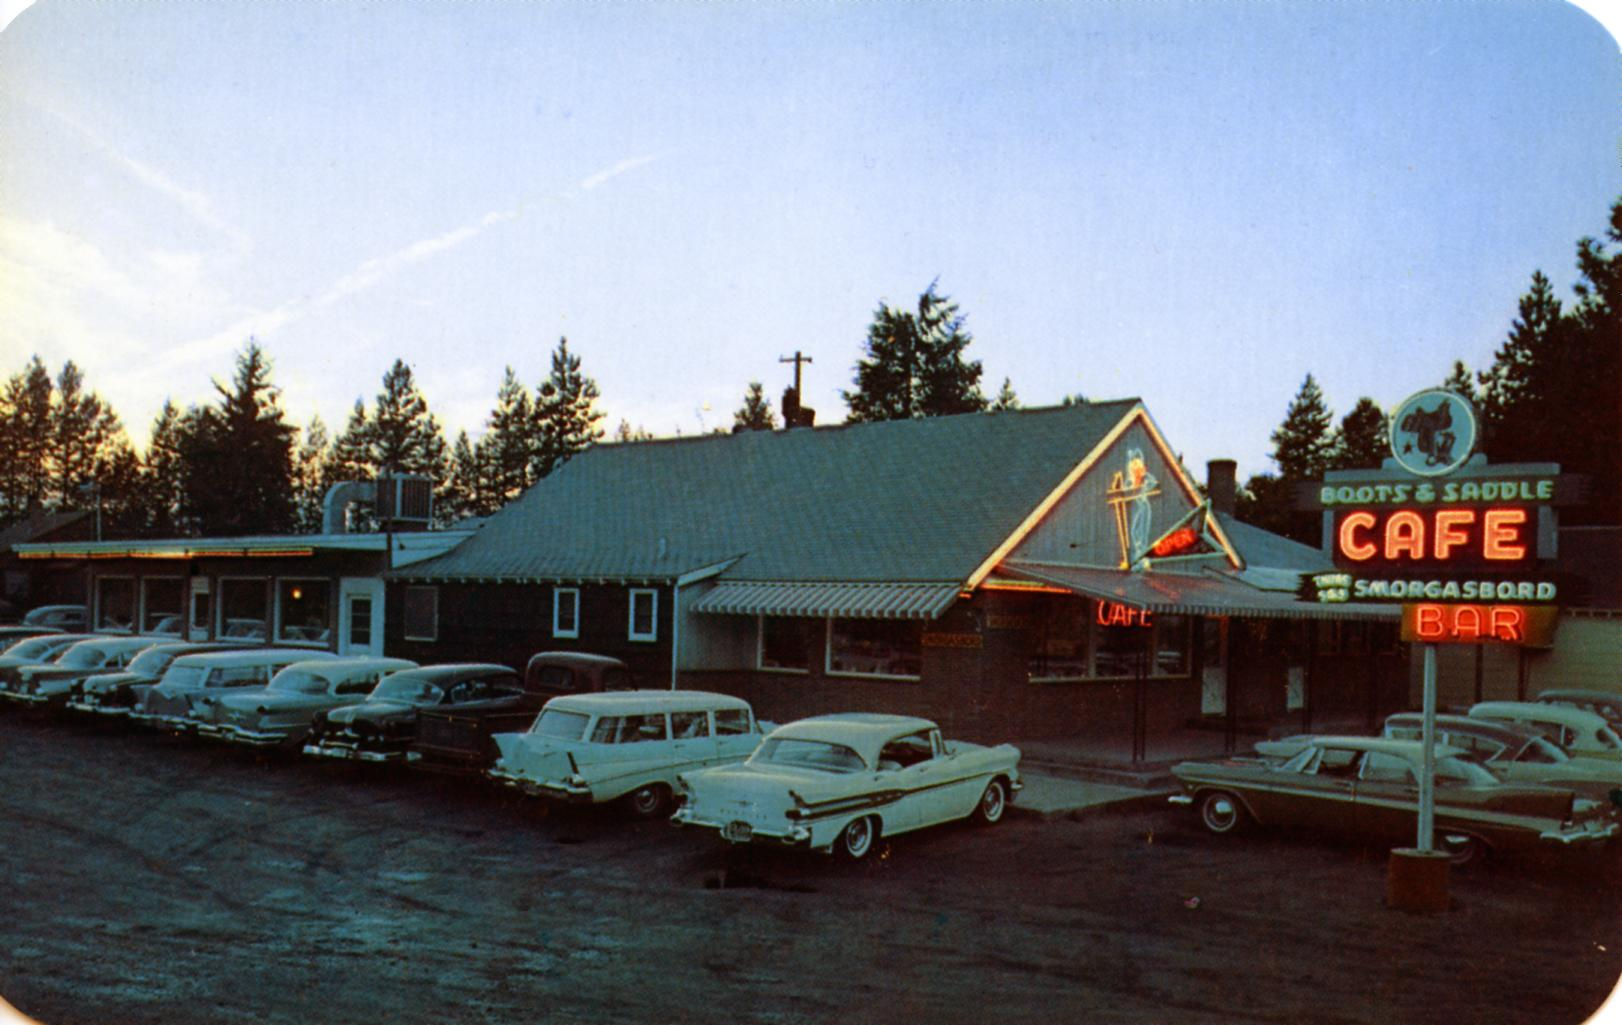 Boots and Saddle Cafe and Smorgasbord - Coeur d'Alene, Idaho U.S.A. - 1950's